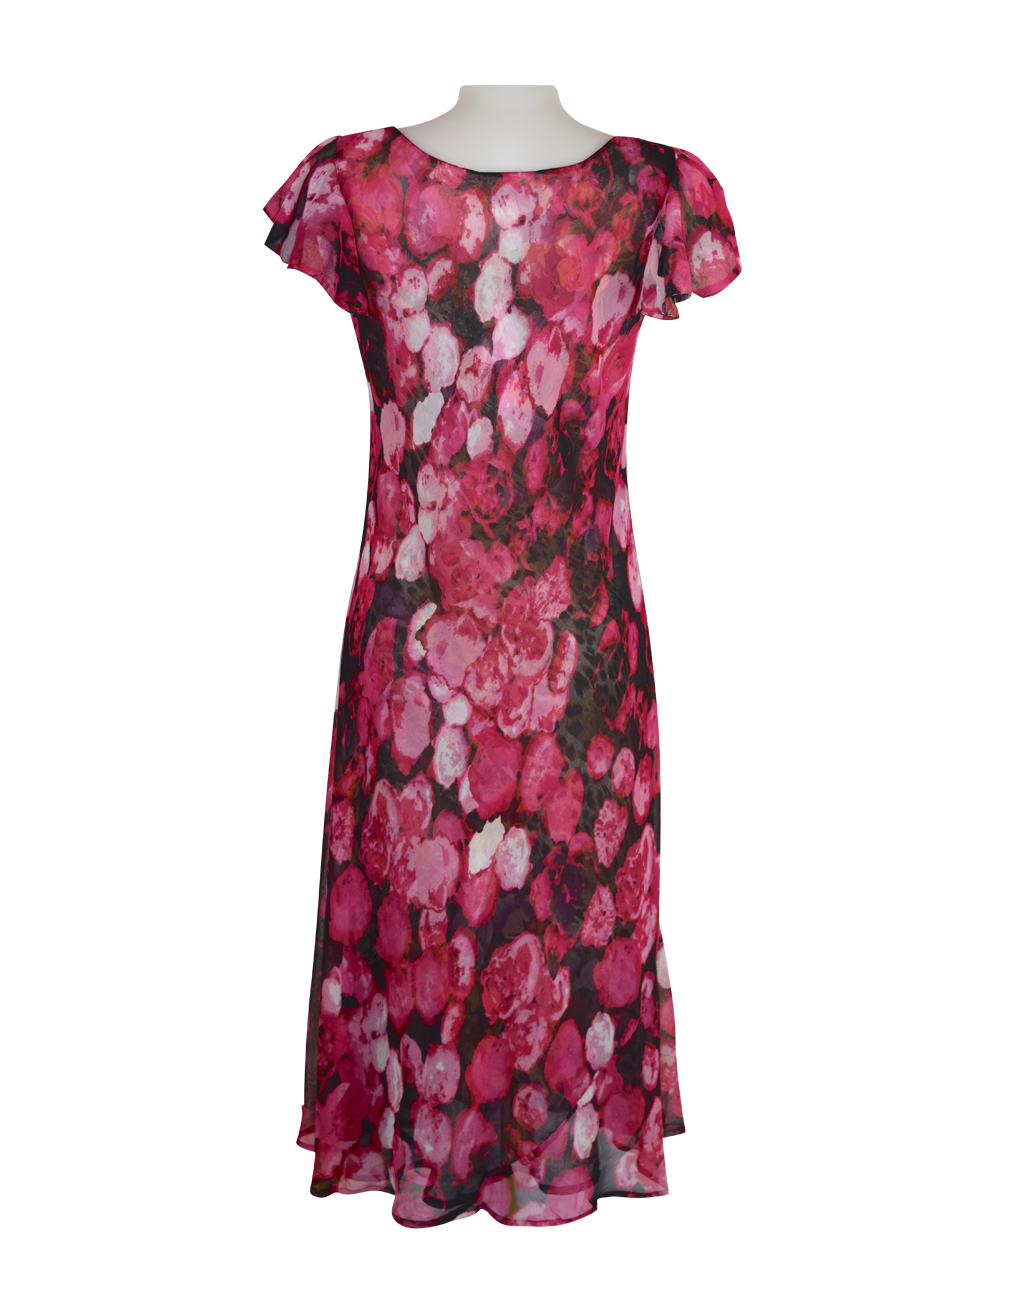 Paramour Reversible 2 In 1 Capped Sleeve Dress Pink Abstract / Leopard Floral C